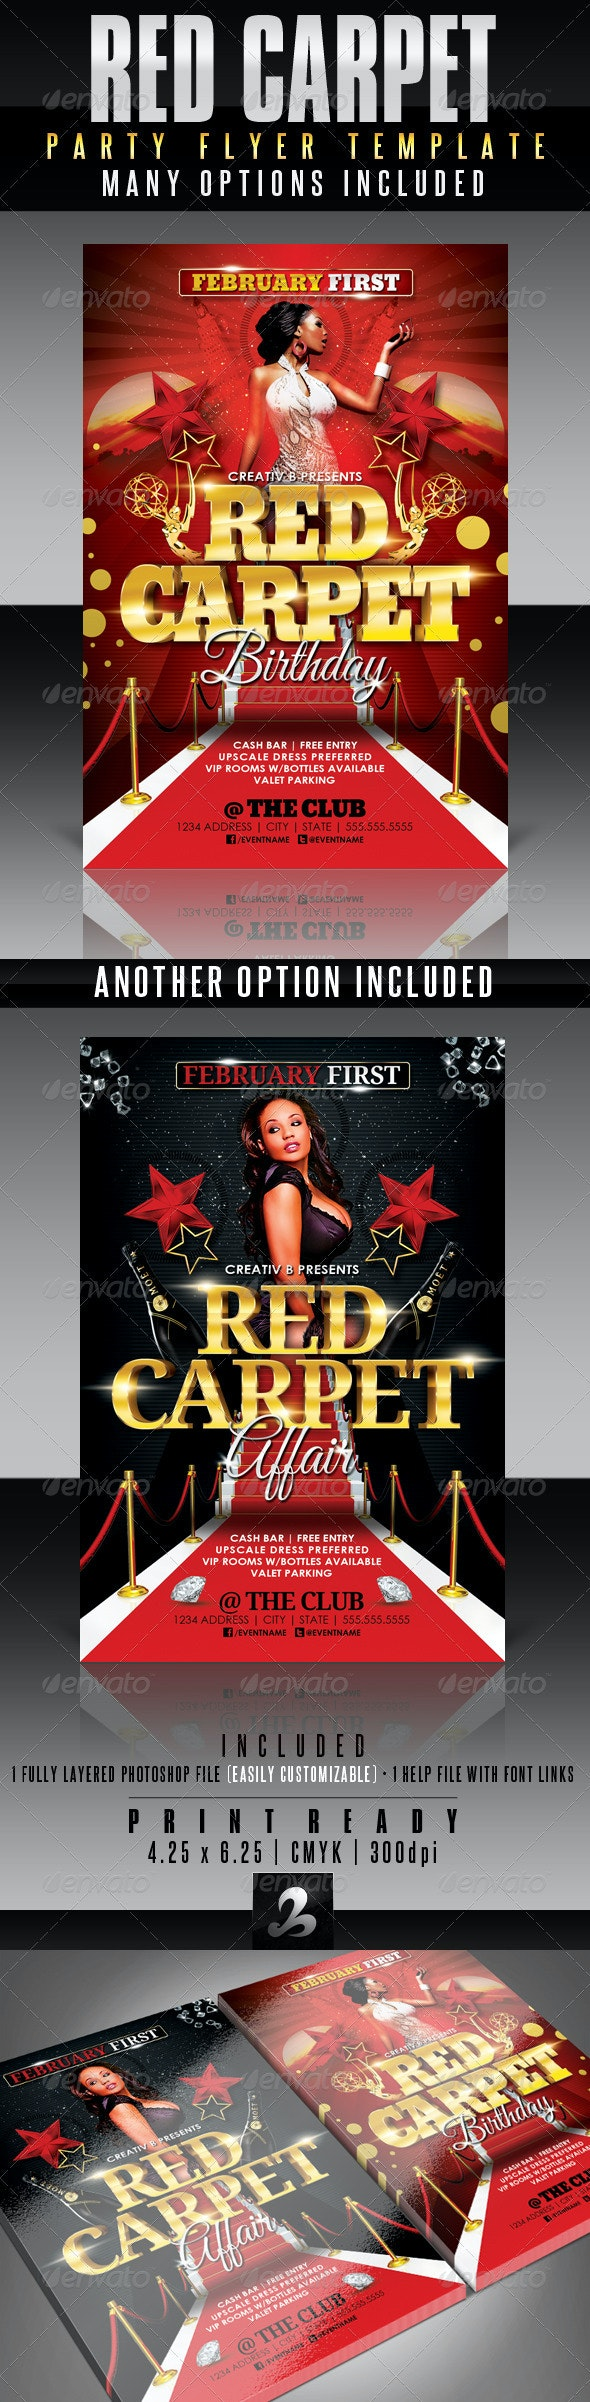 Red Carpet Party Flyer Template - Clubs & Parties Events